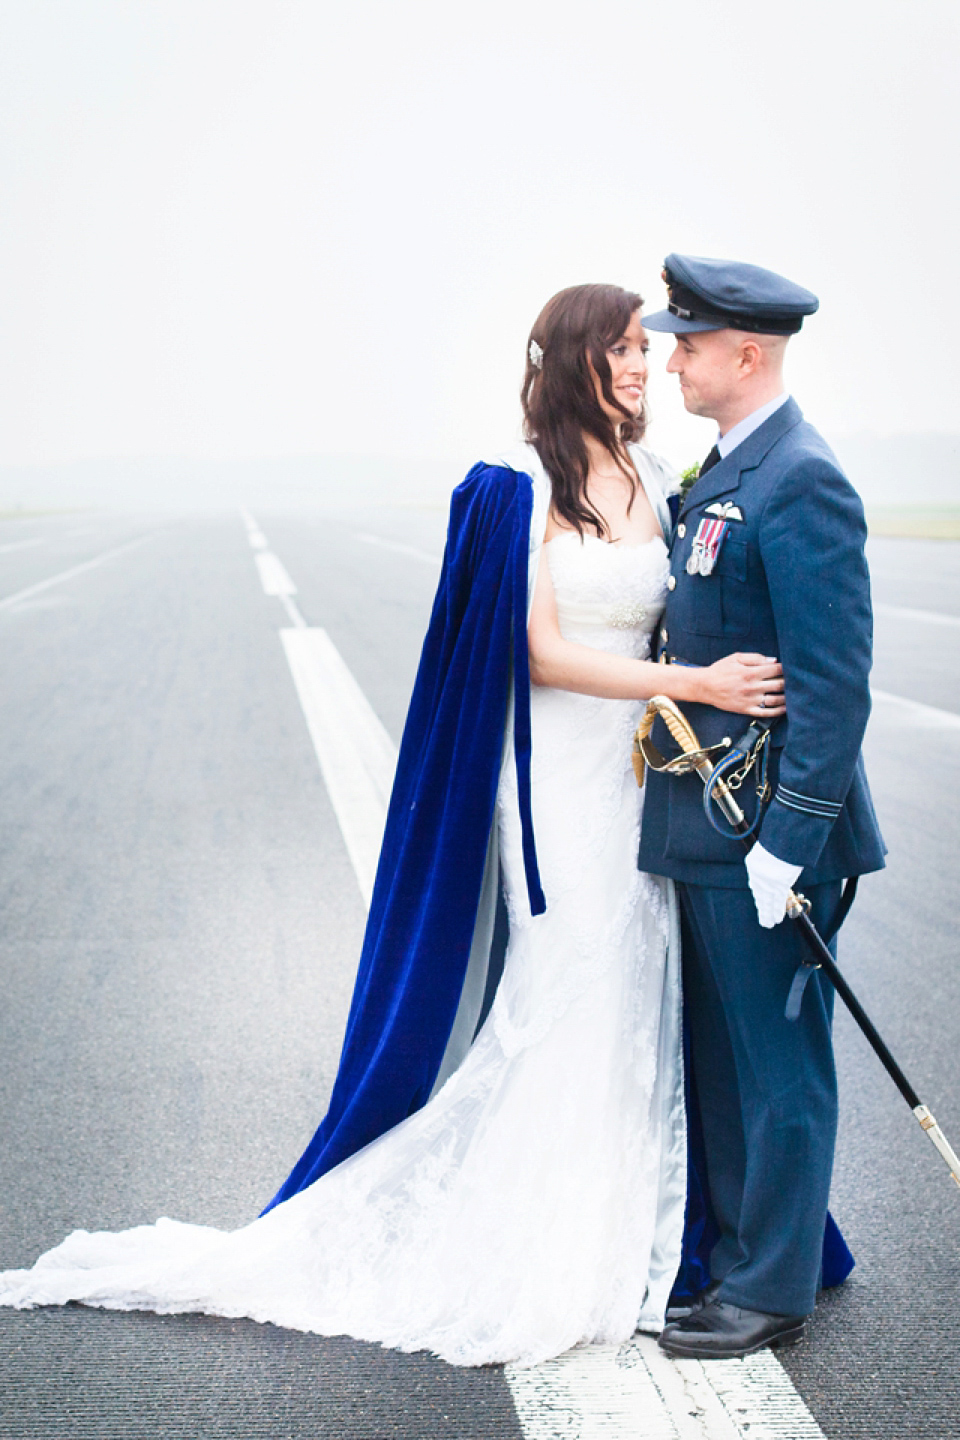 A Blue Hooded Cape for a Winter Military Wedding at York Minster